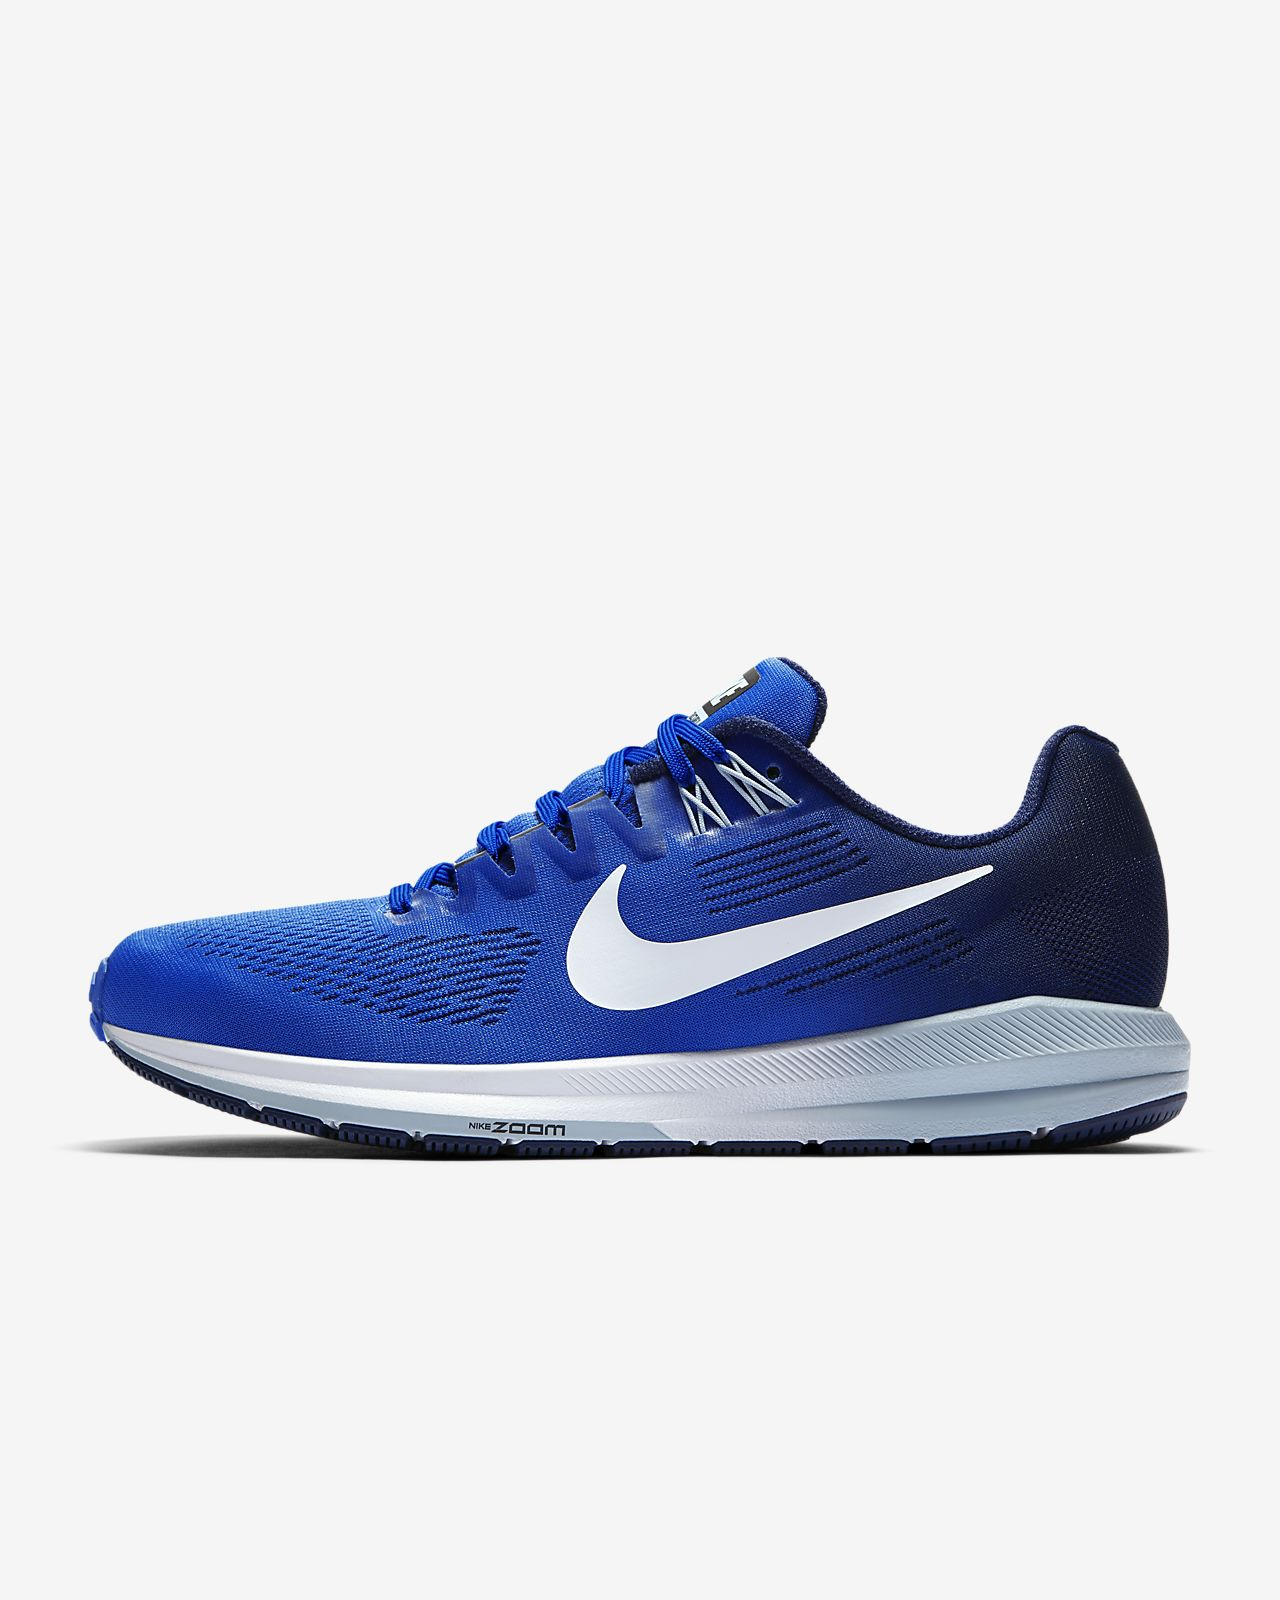 Nike Air Zoom Structure 21 Men's Running Shoe